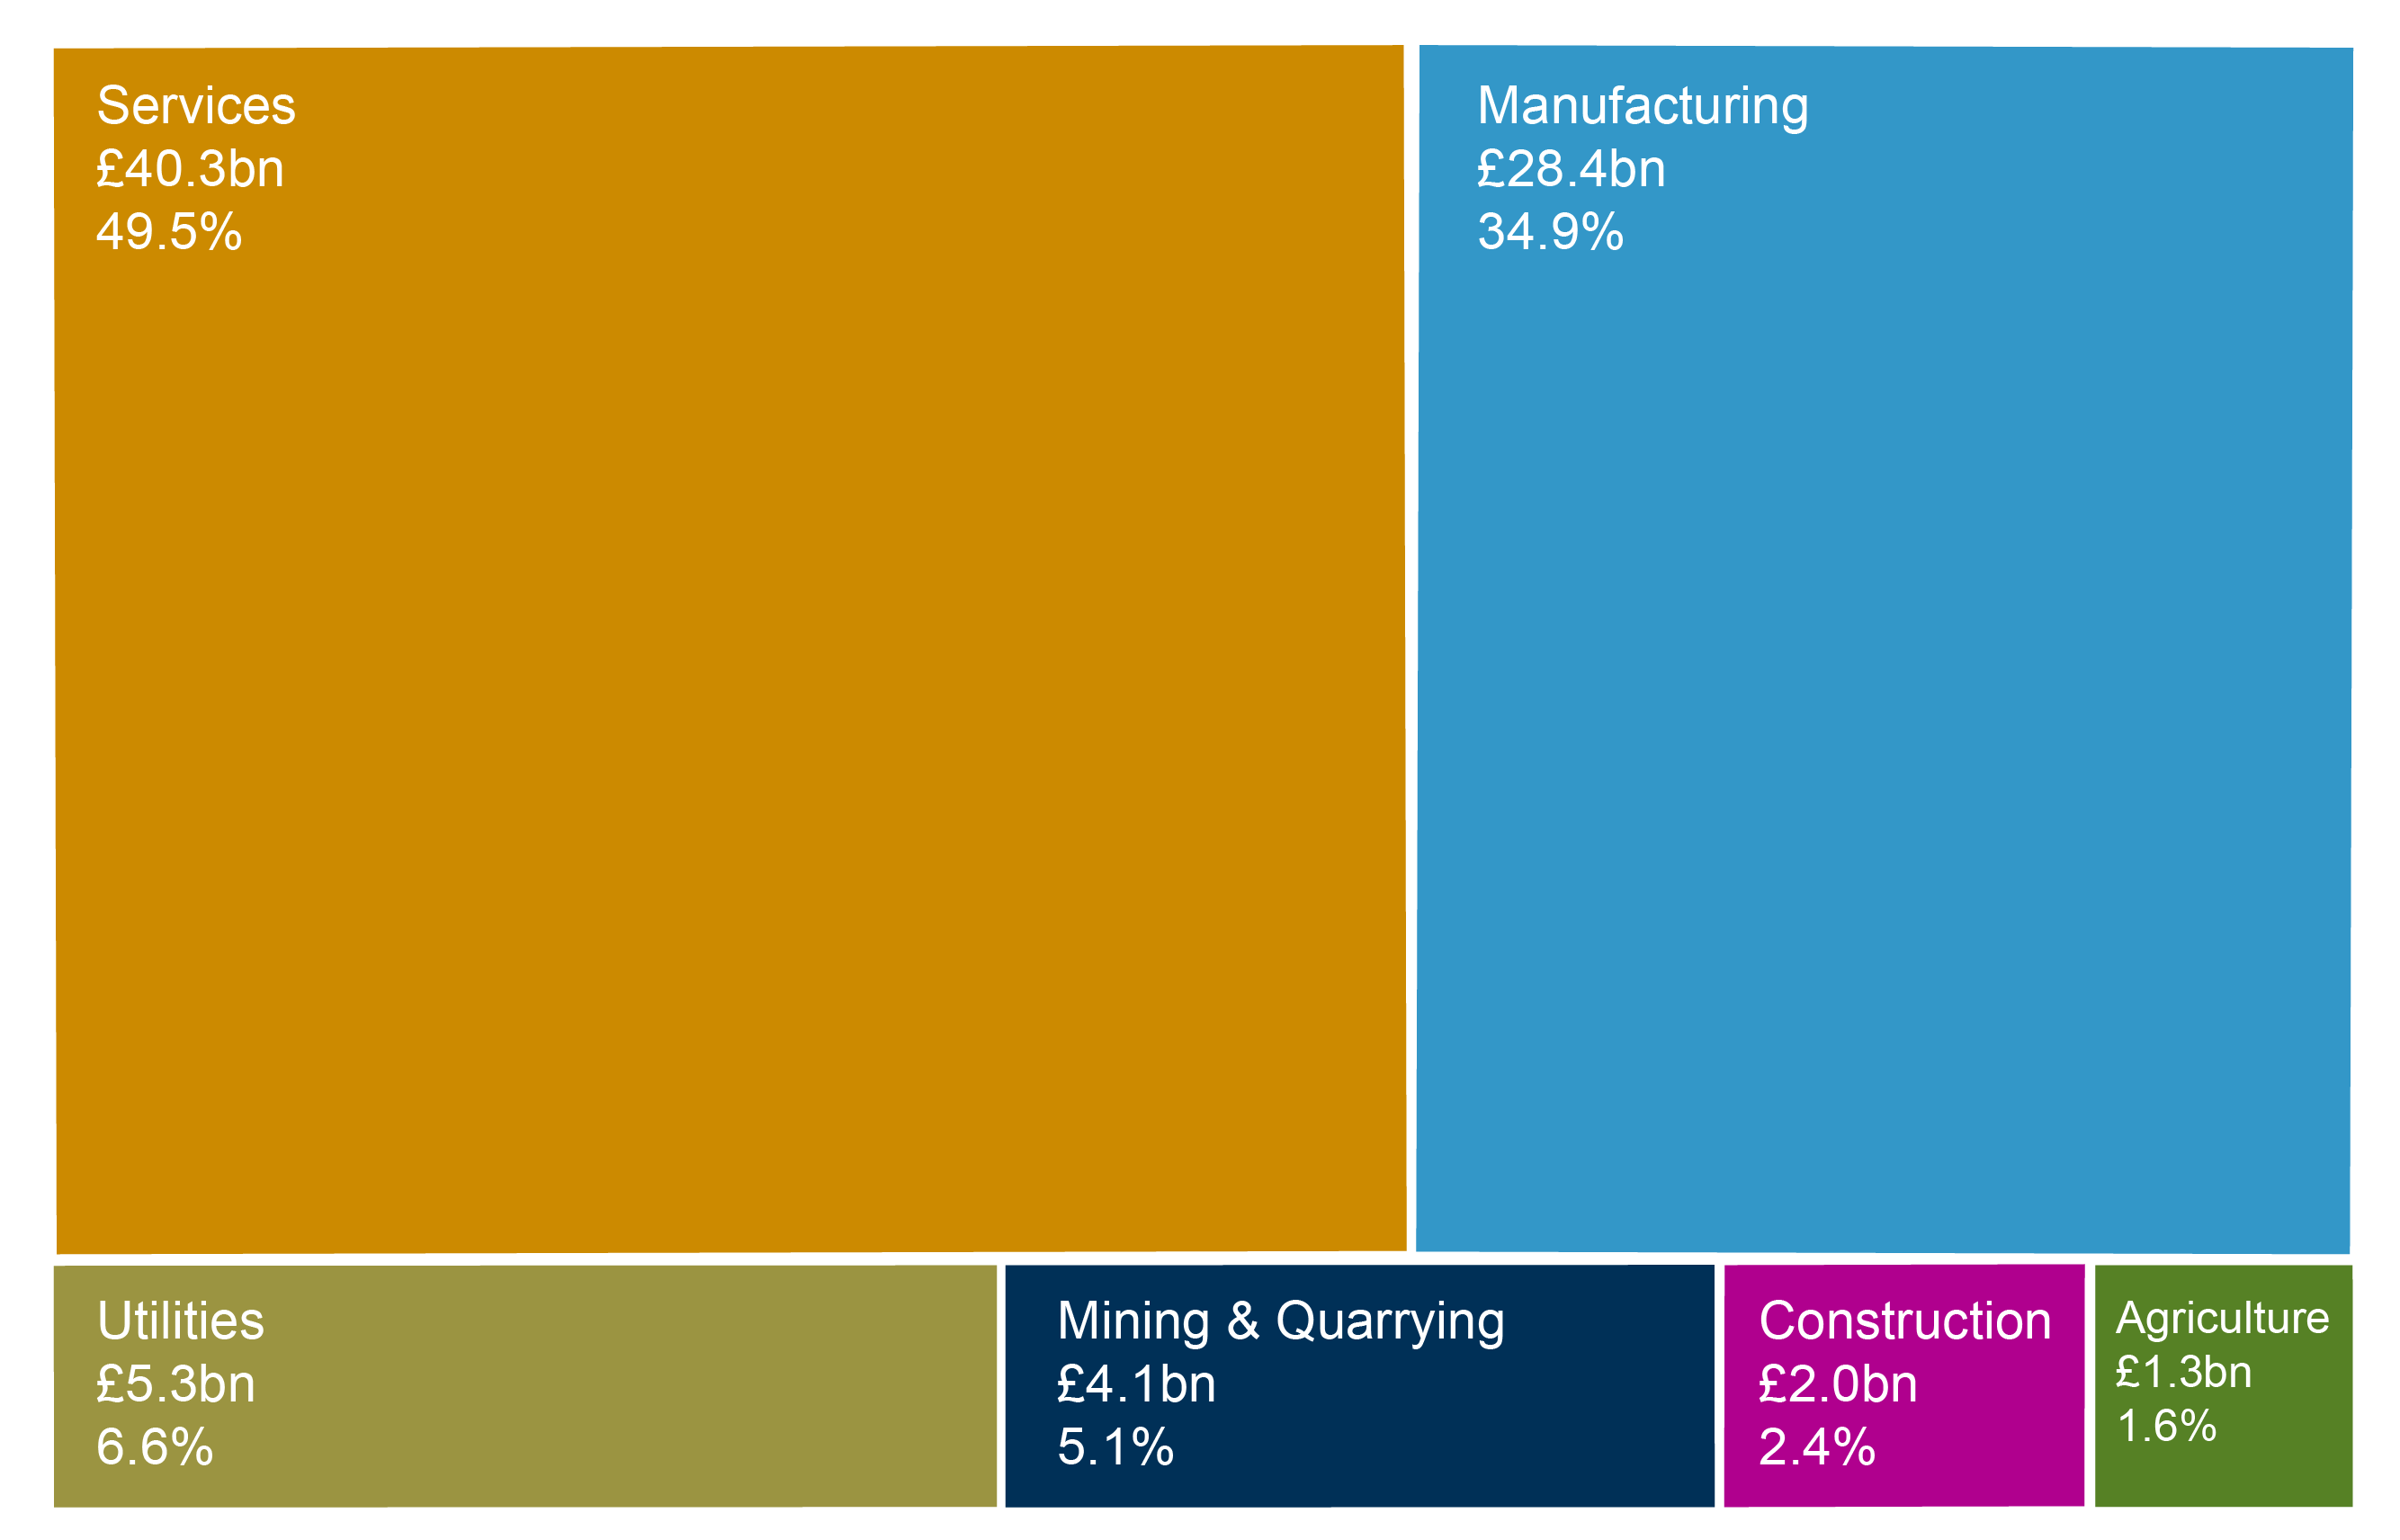 The value of exports by broad sector in Scotland in 2017.